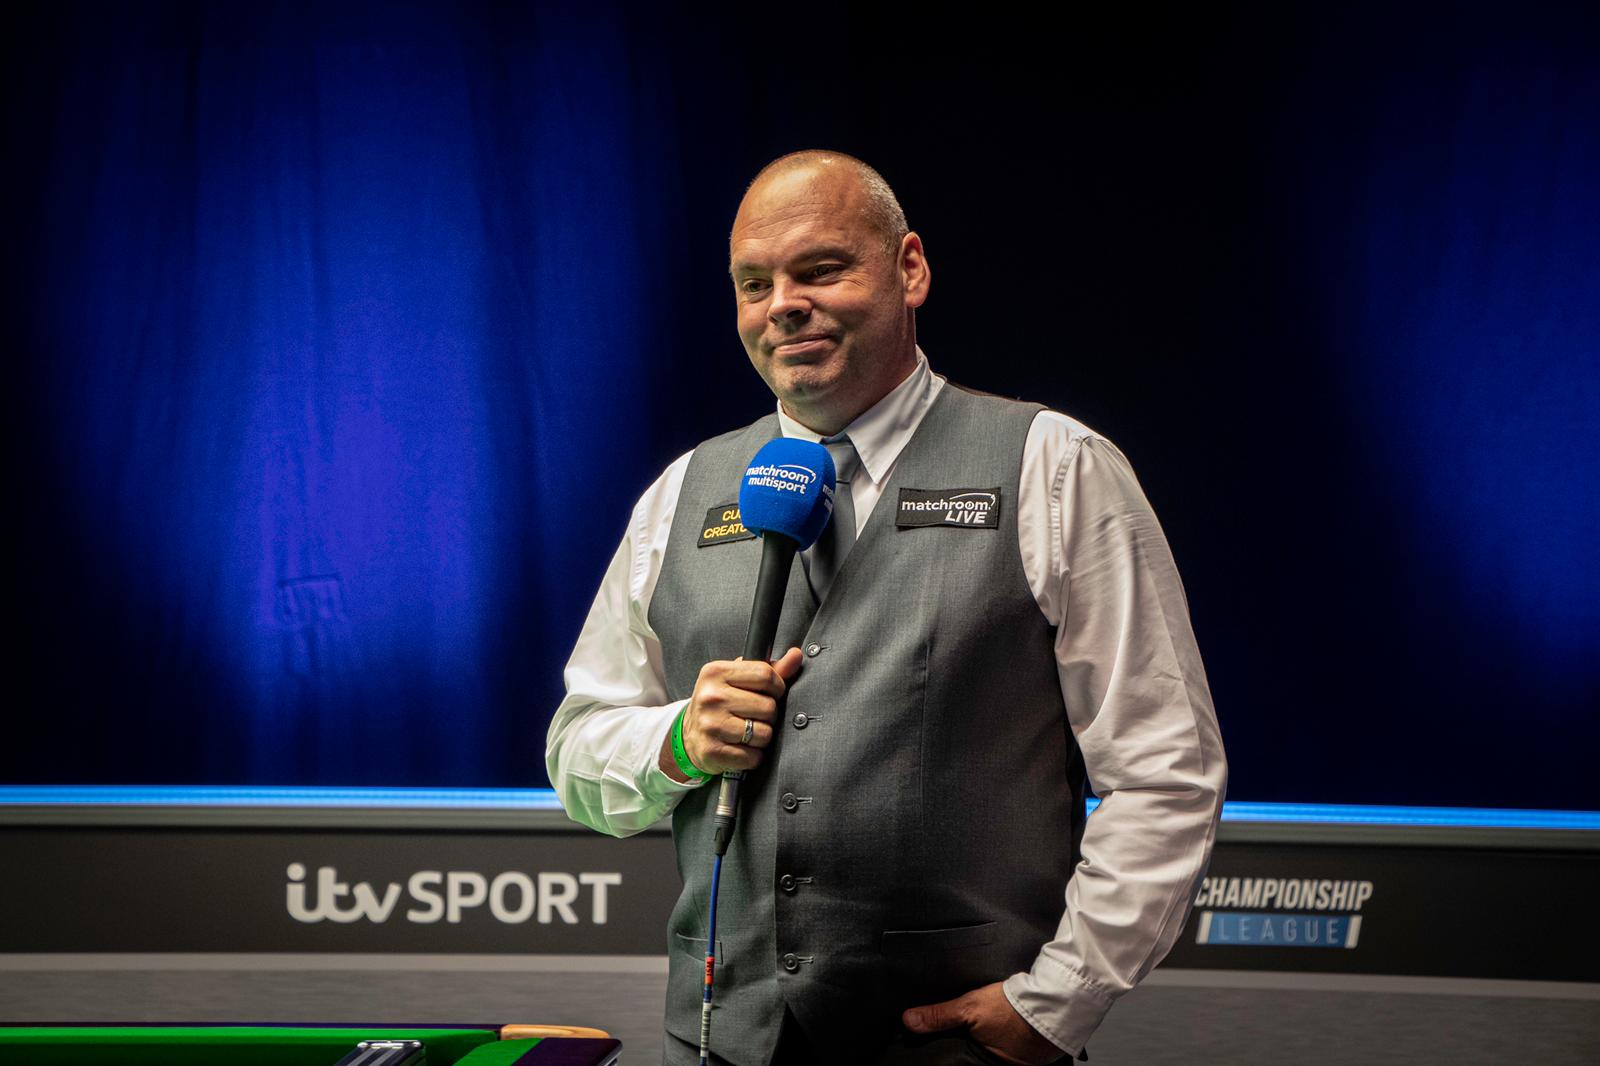 BINGHAM KNOCKS ROCKET OUT AS WOOLLASTON ADVANCES AT MATCHROOM.LIVE CHAMPIONSHIP LEAGUE